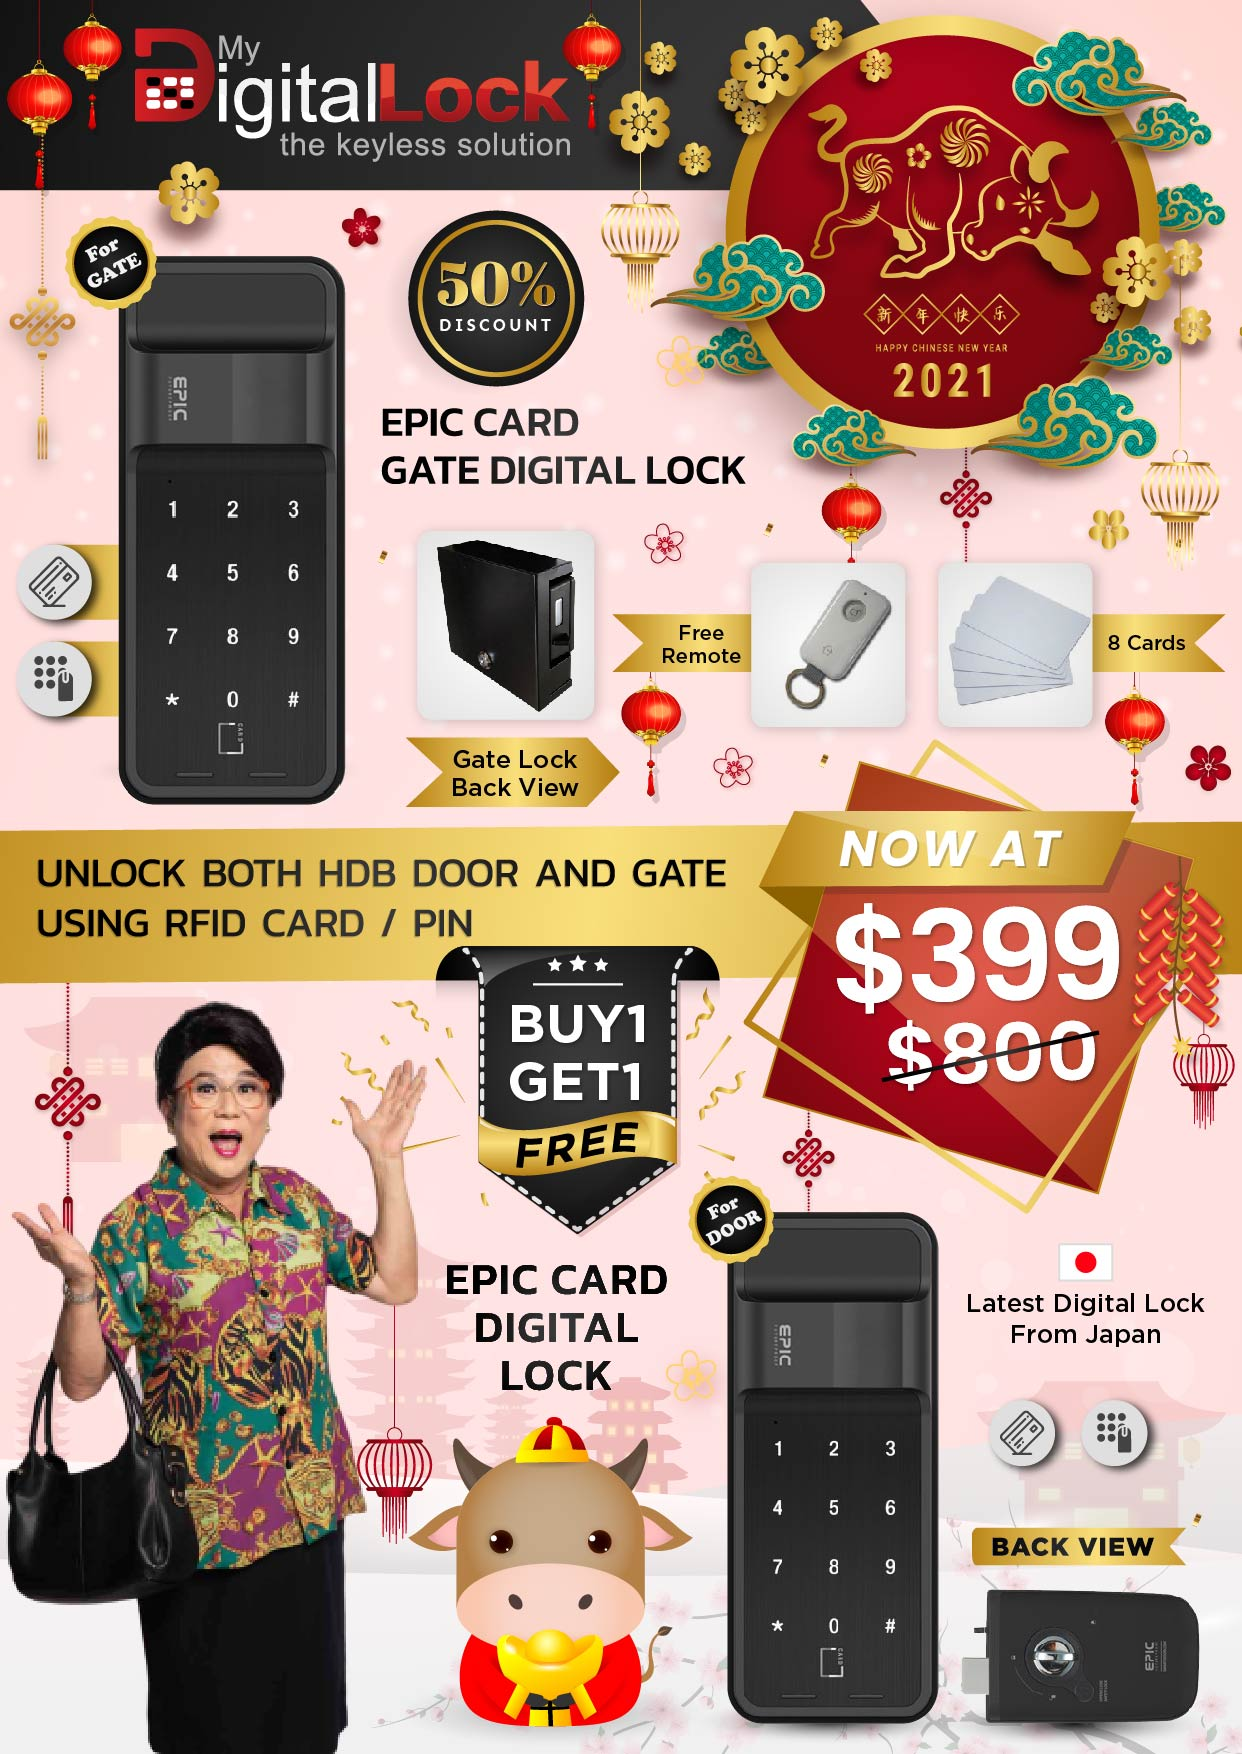 hdbdoor-gatecard-chinese-newyear-promotions